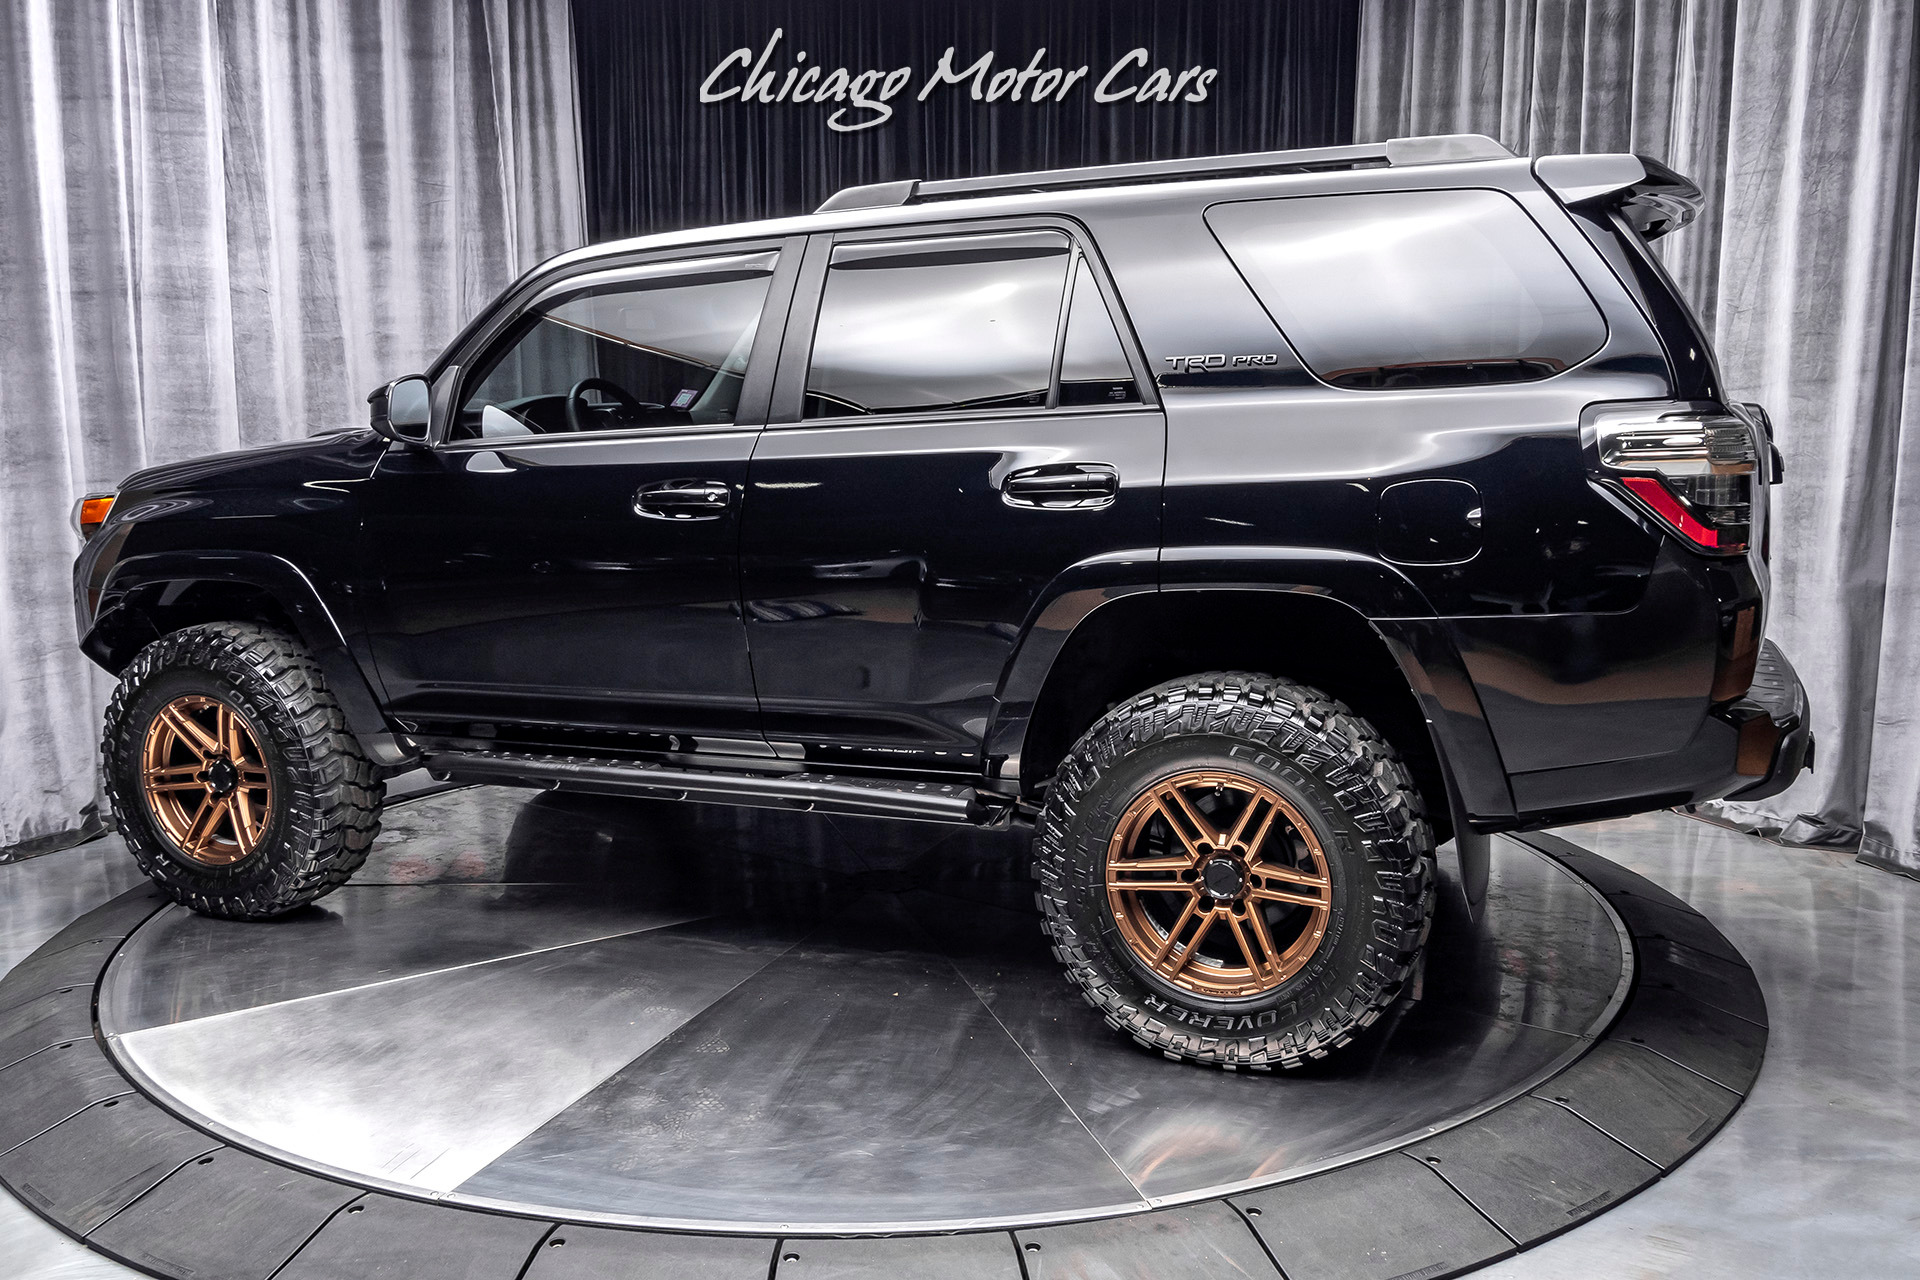 Used 2015 Toyota 4runner Trd Pro 4x4 Suv 10k In Upgrades Low Miles Vorsteiner Wheels For Sale Special Pricing Chicago Motor Cars Stock 16436a